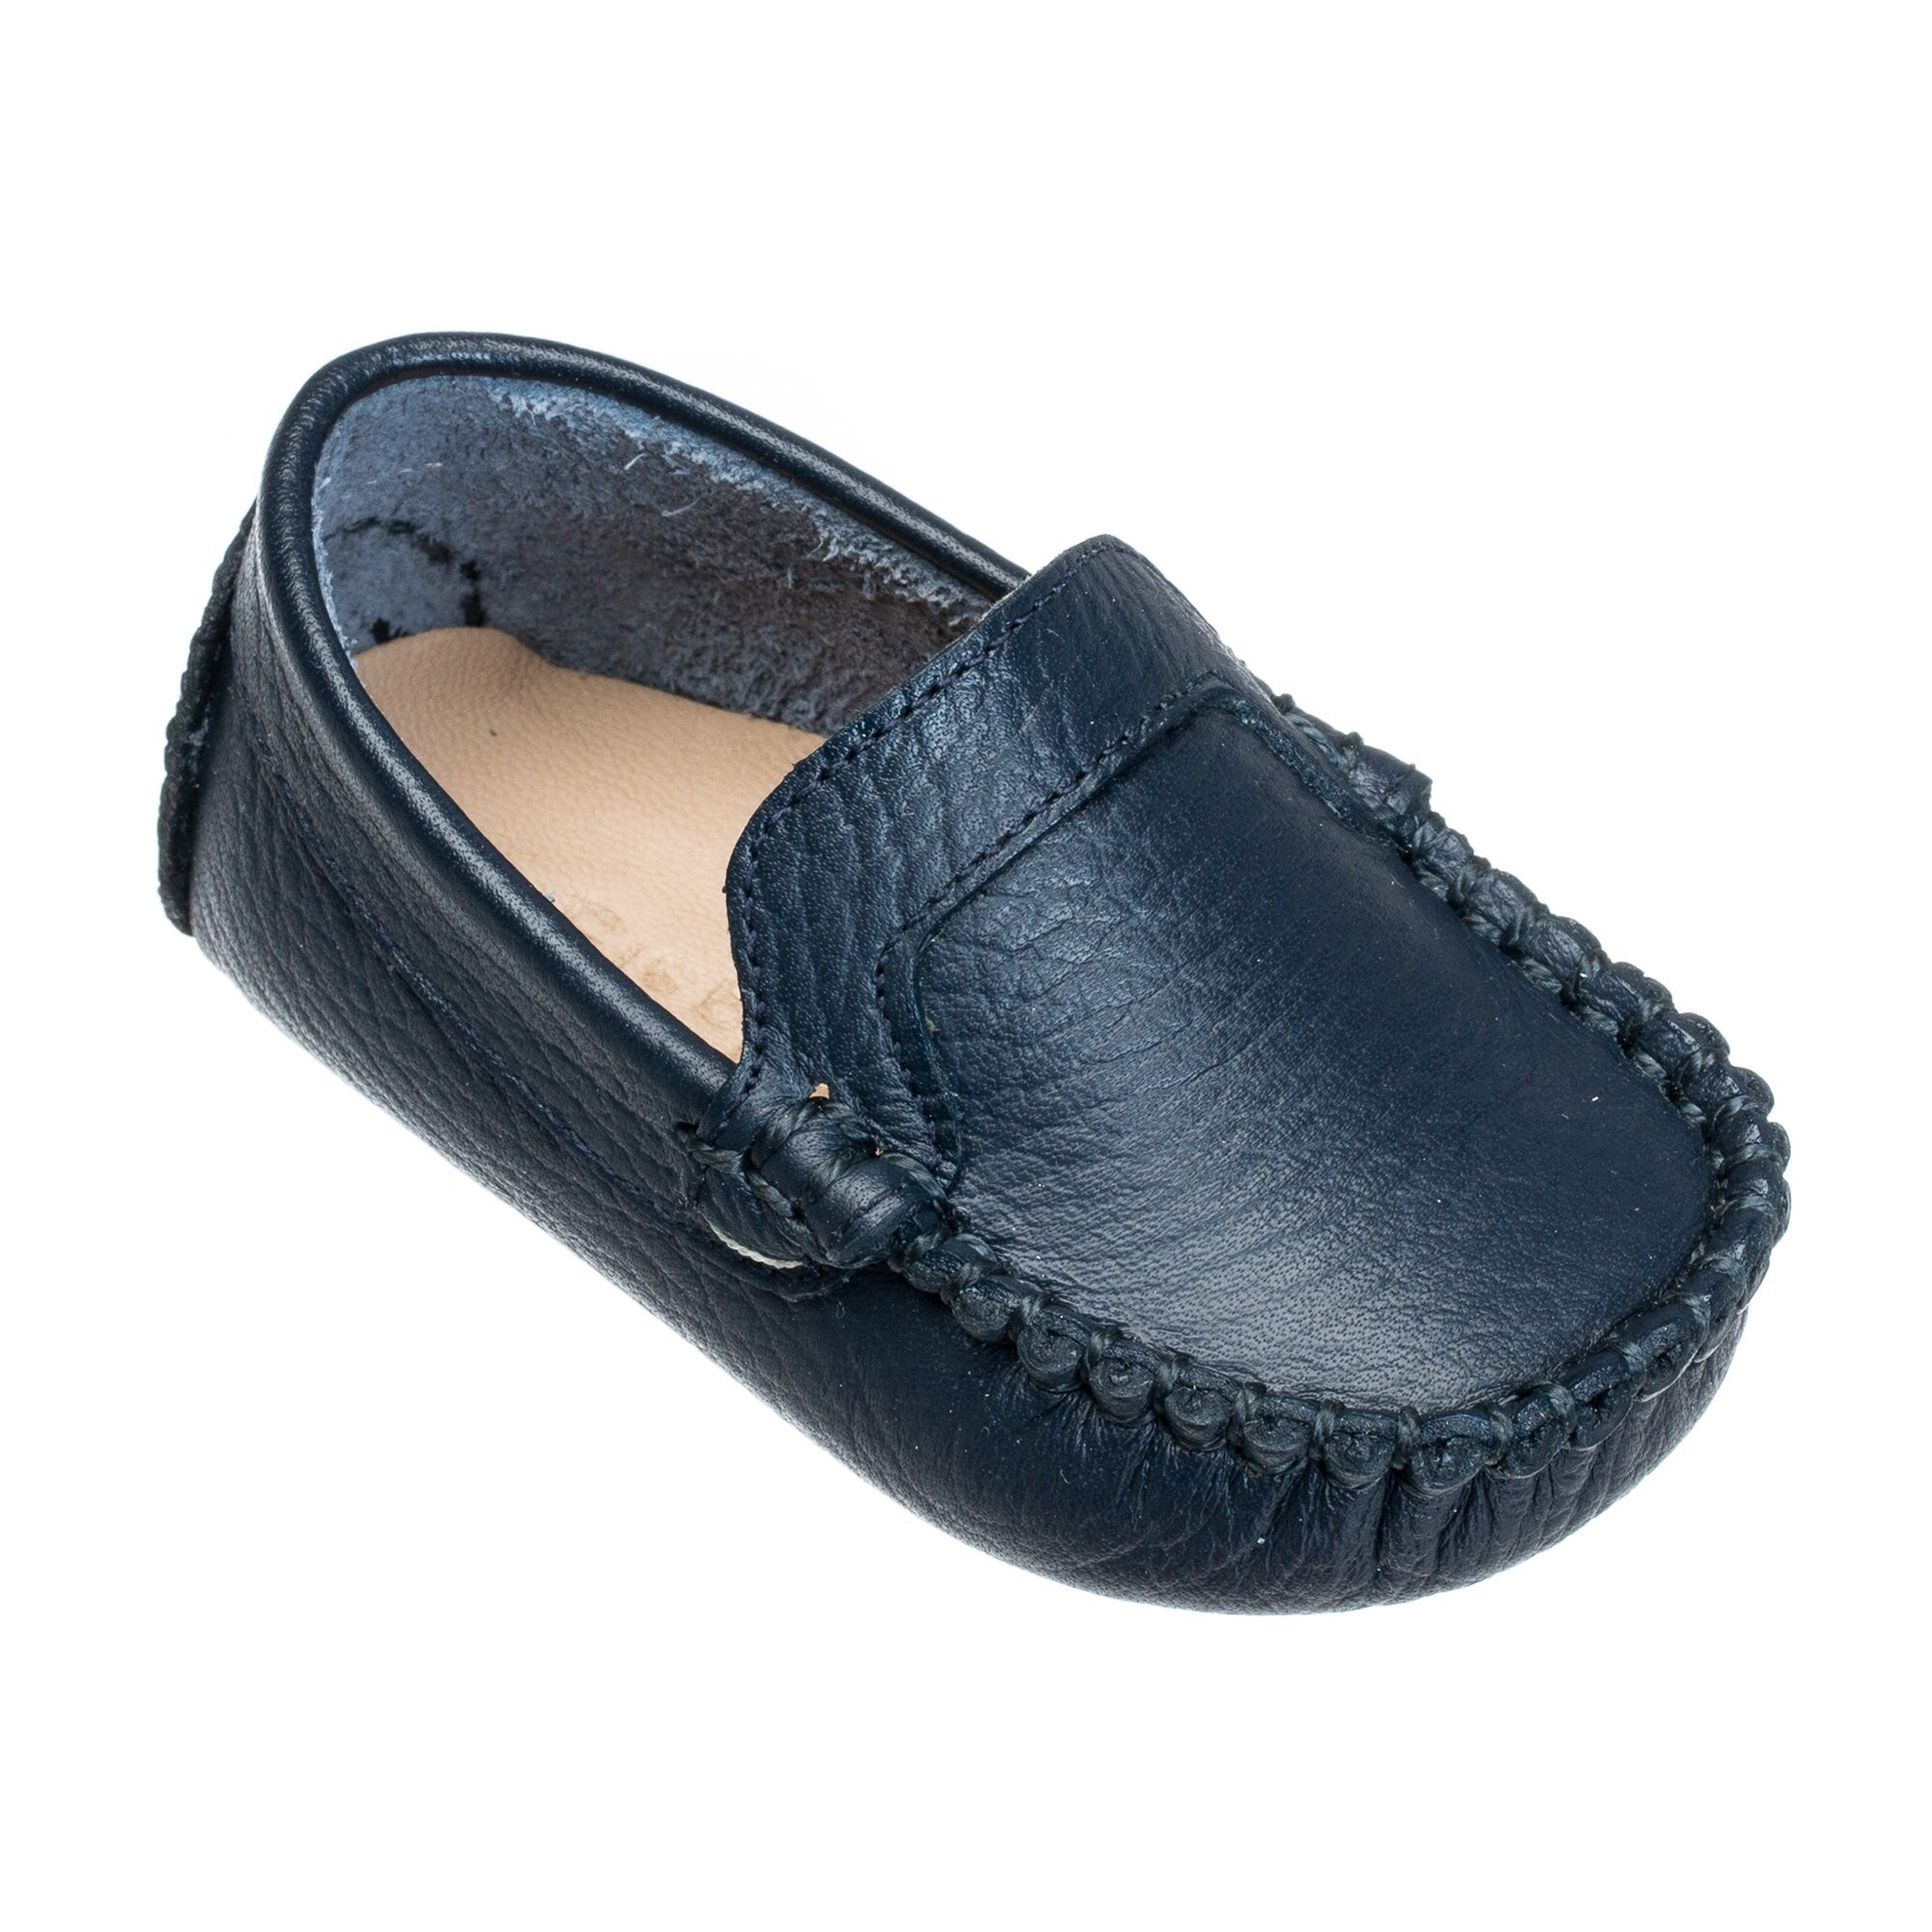 Elephantito baby moccasin driving mocc navy blue